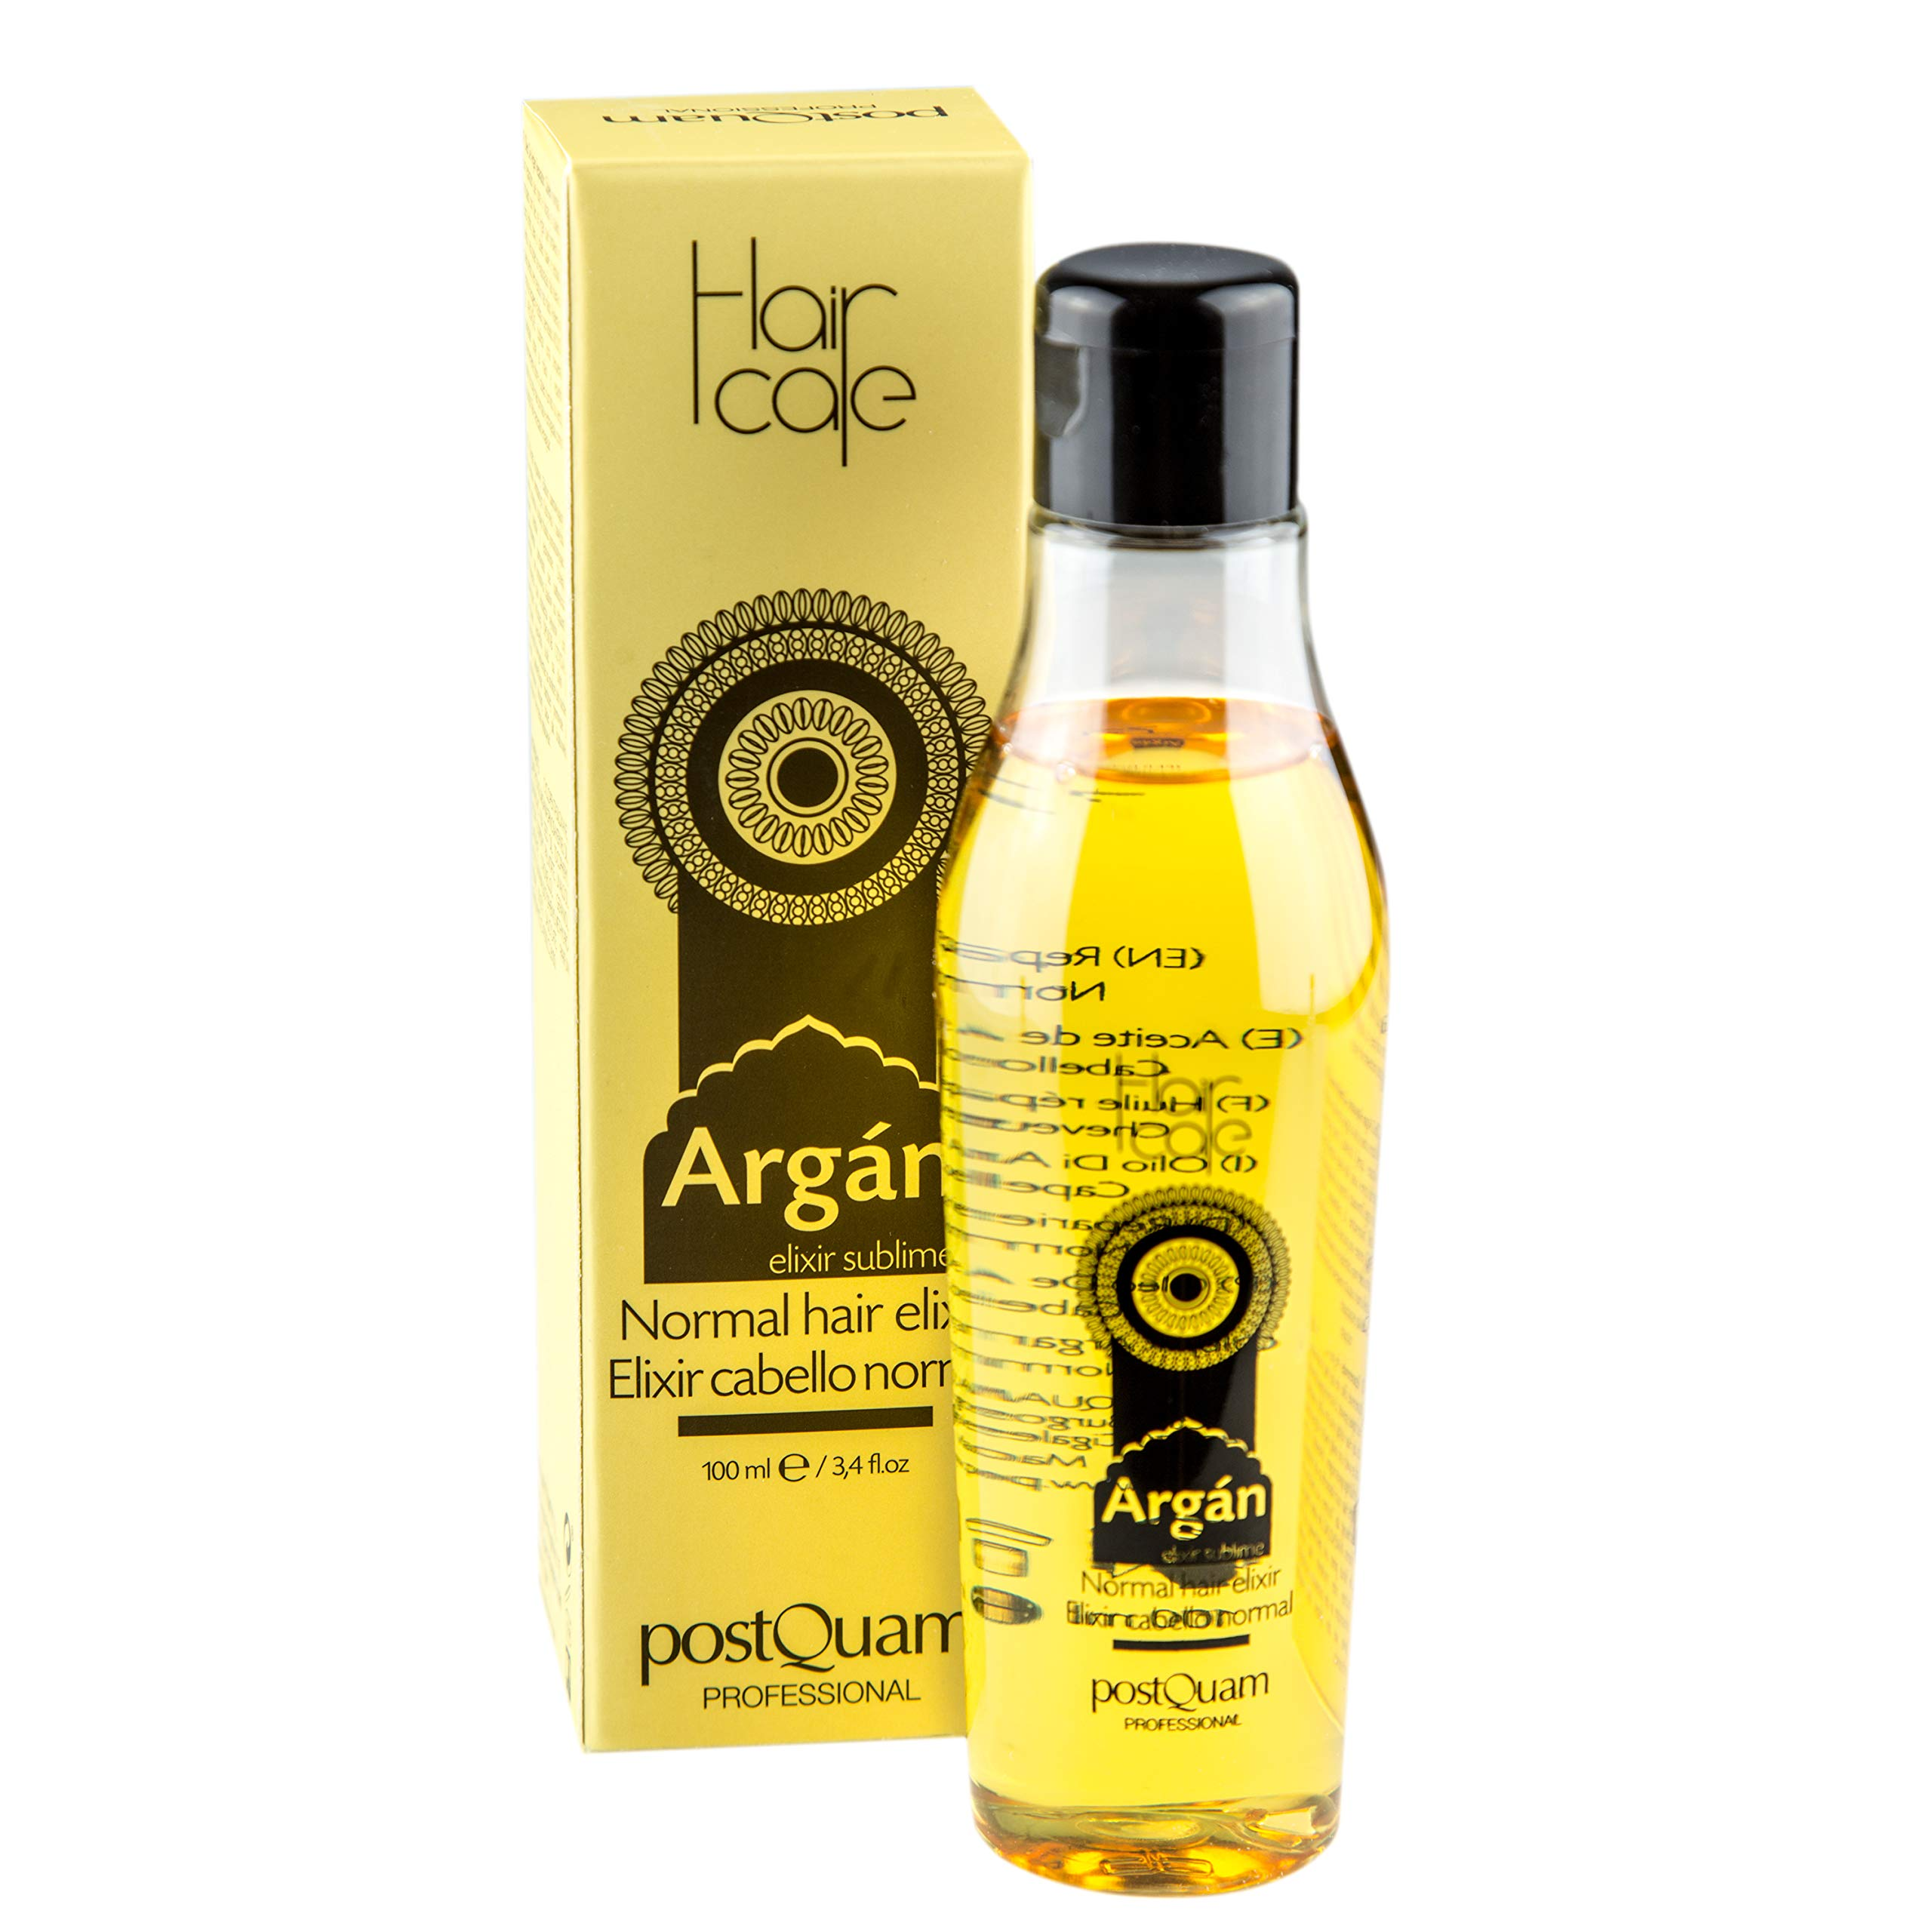 Postquam - Hair Care | Aceite de Argan Sublime para Cabellos Normales - 100ml product image